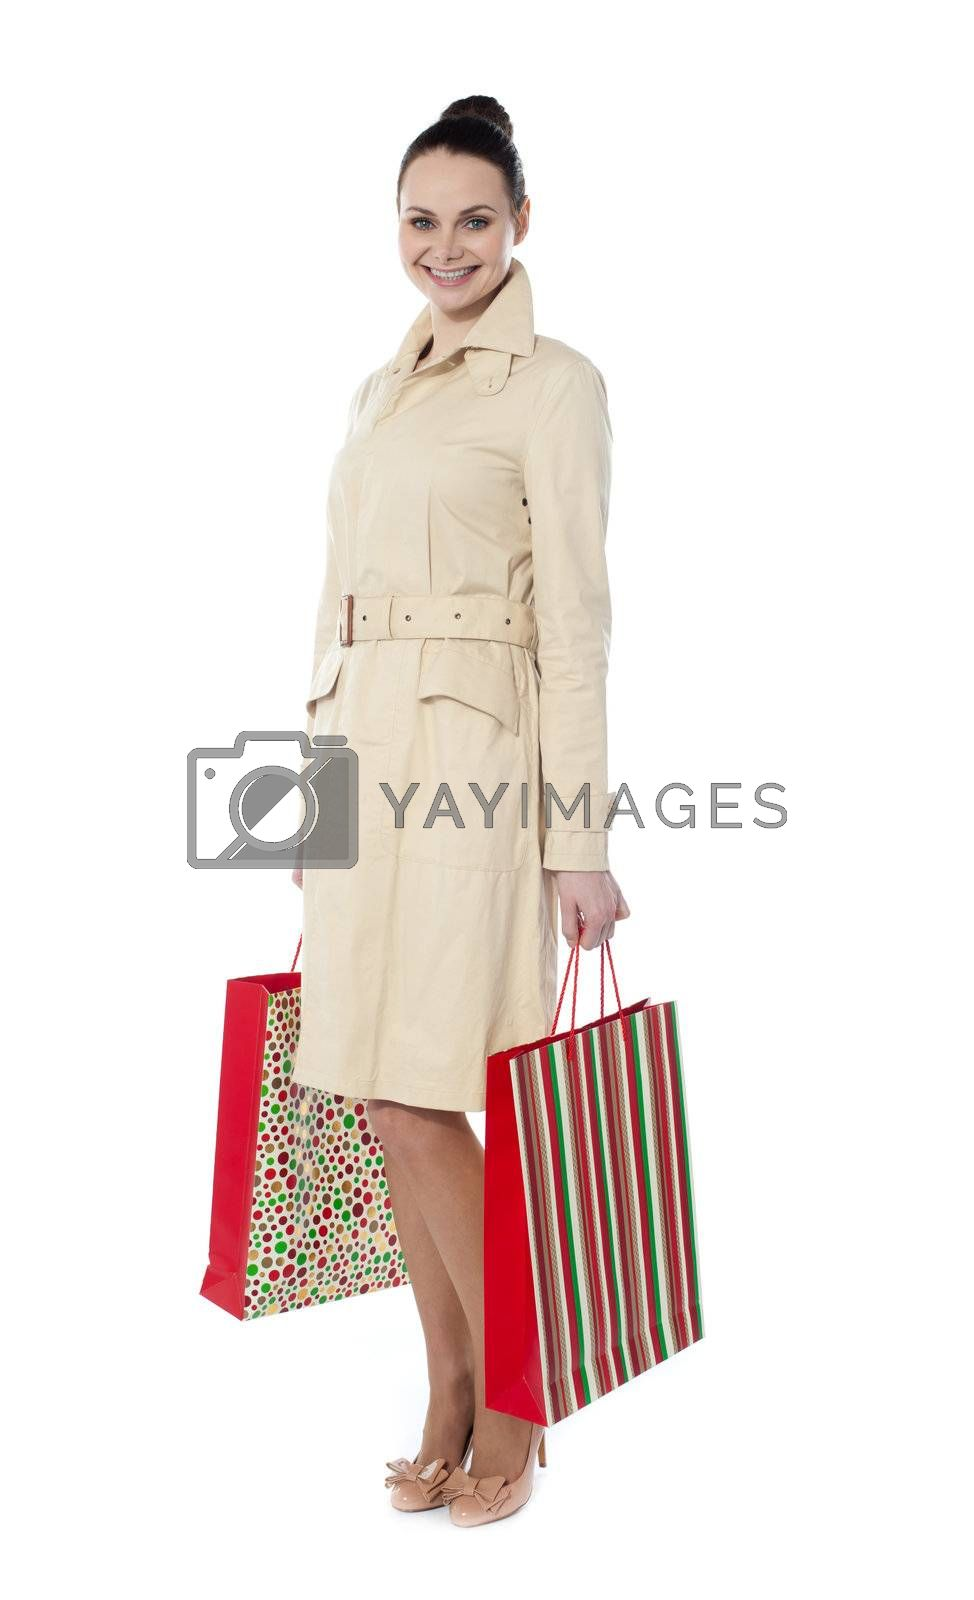 Portrait of a young woman with shopping bags in both hands